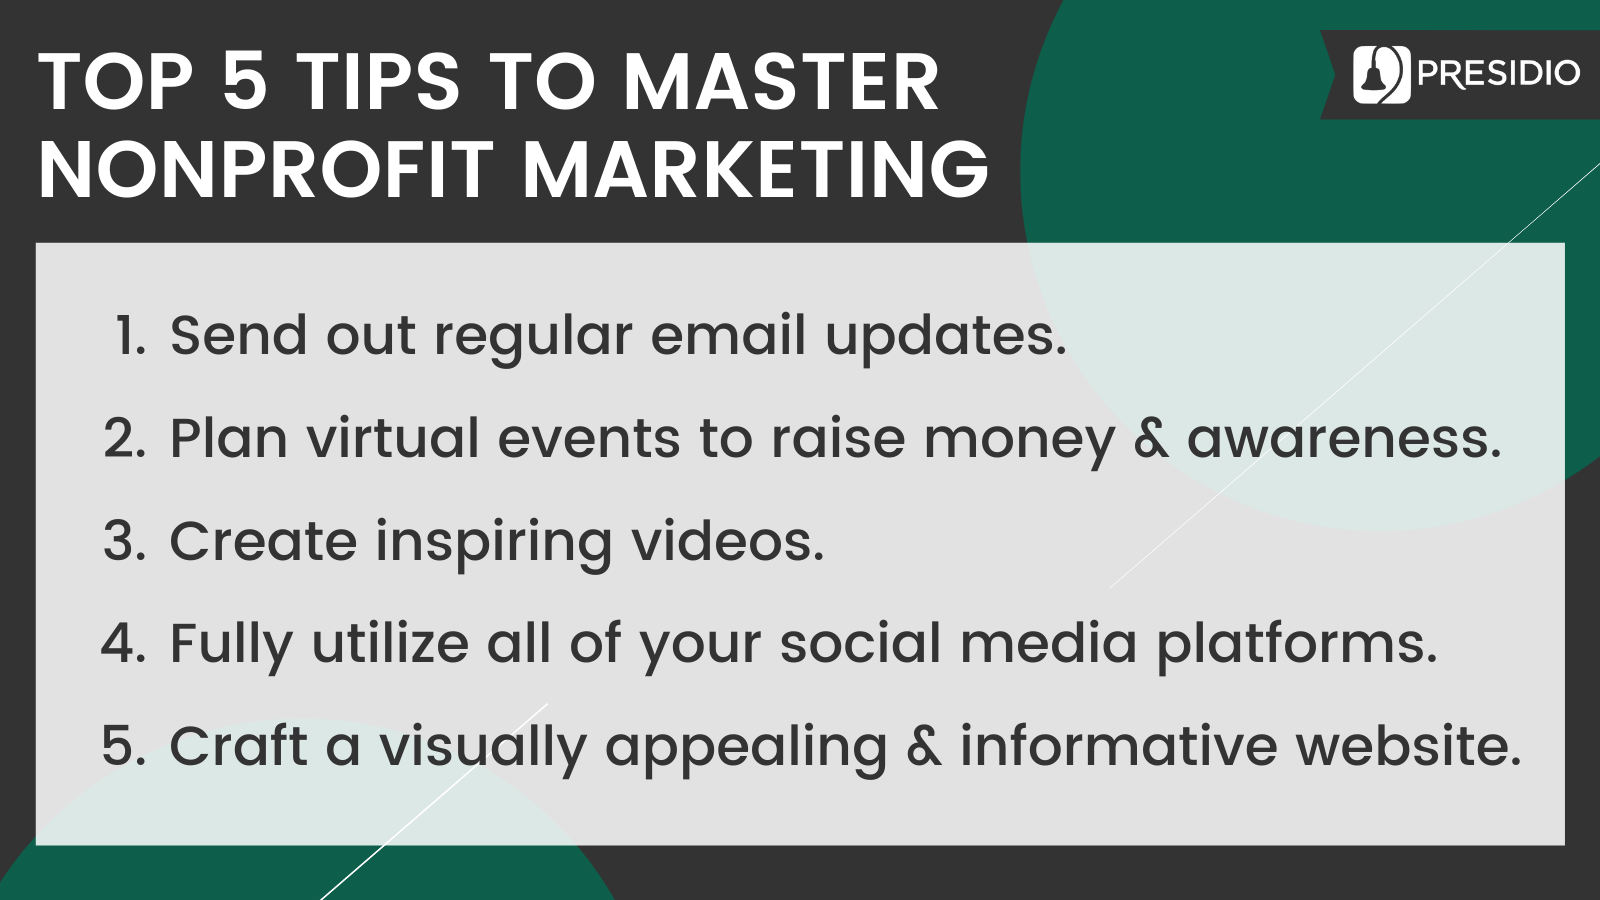 Top 5 Tips for Mastering Nonprofit Marketing